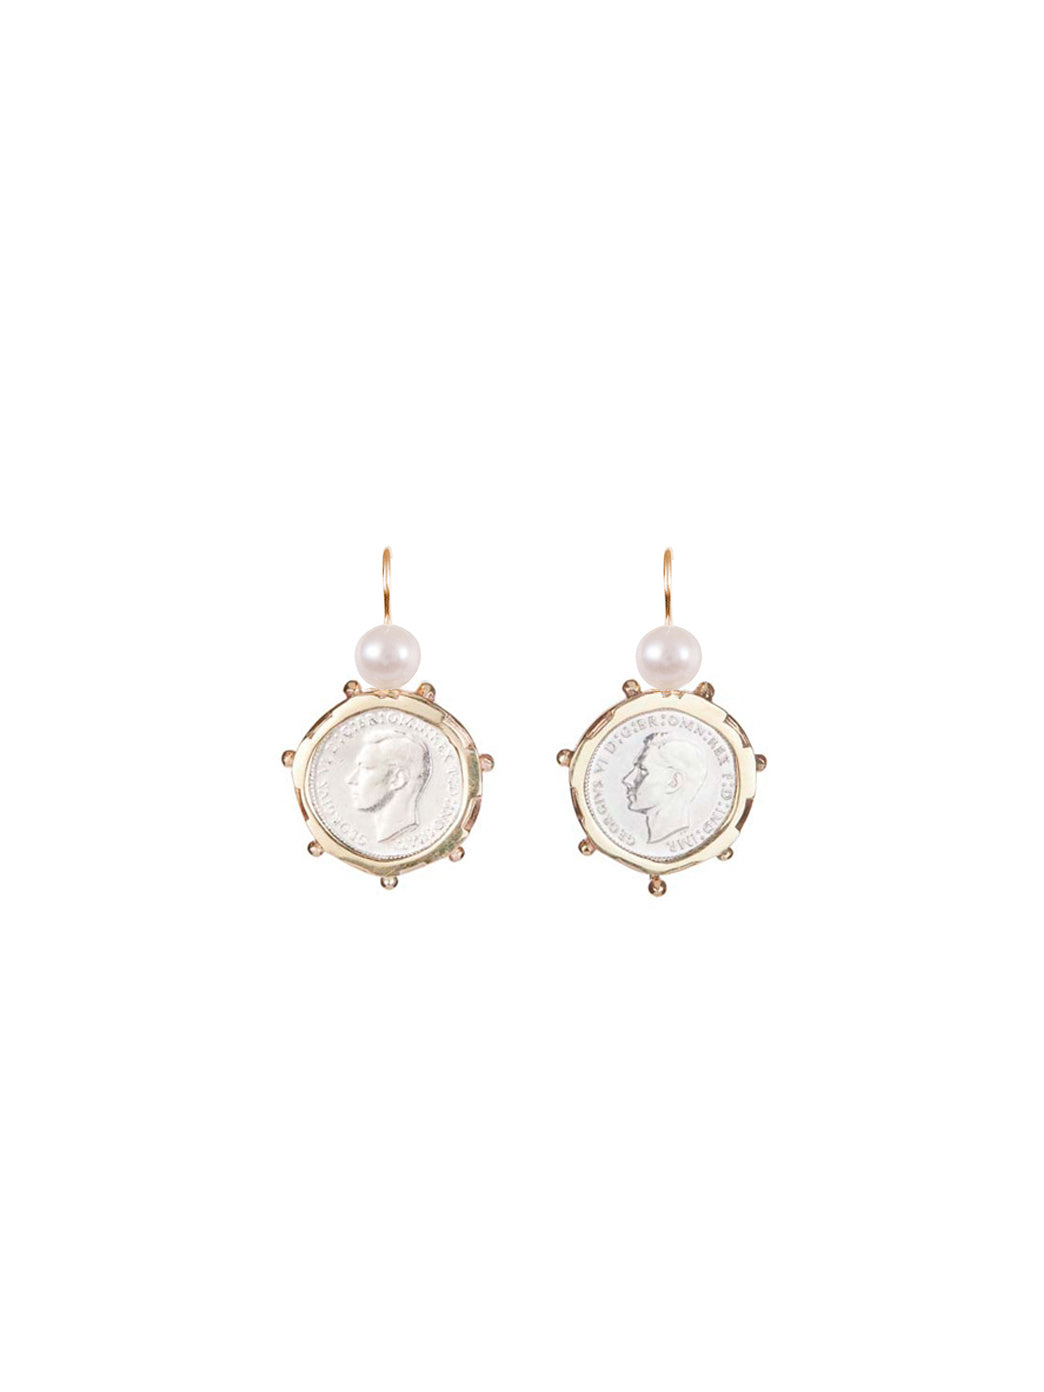 Fiorina Jewellery Gold Encased 3p Coin Earrings Pearl Highlights